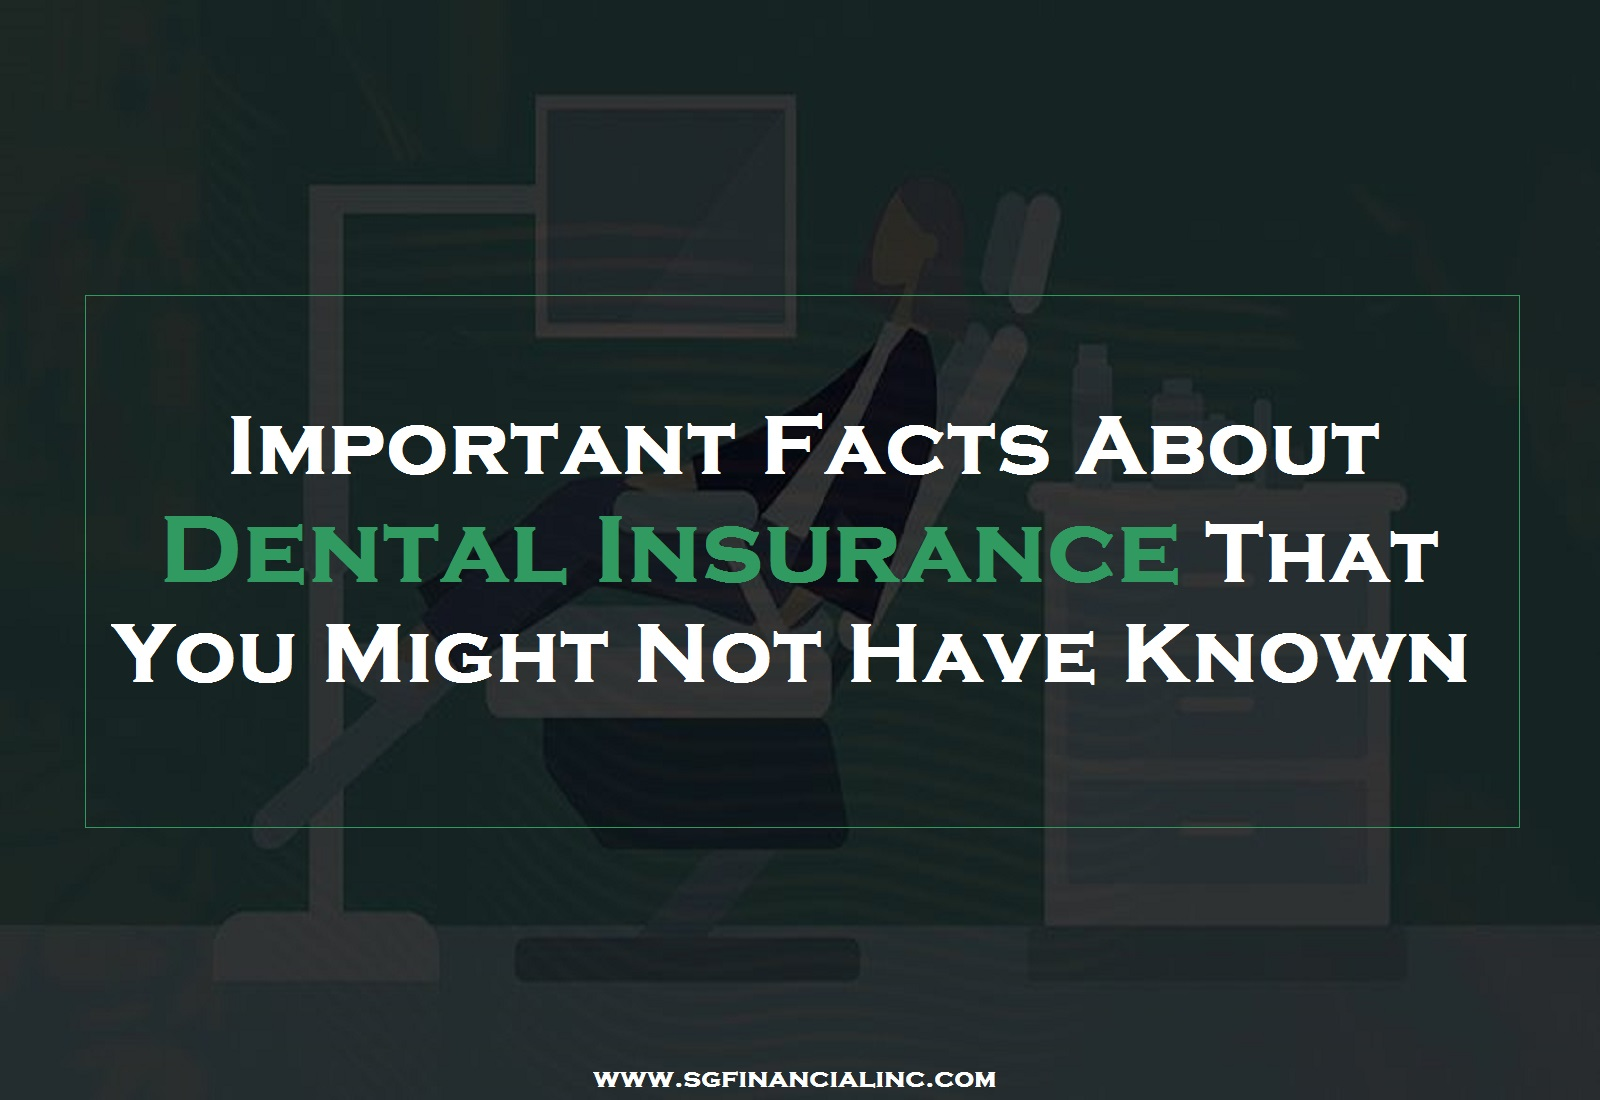 Important Facts About Dental Insurance That You Might Not Have Known